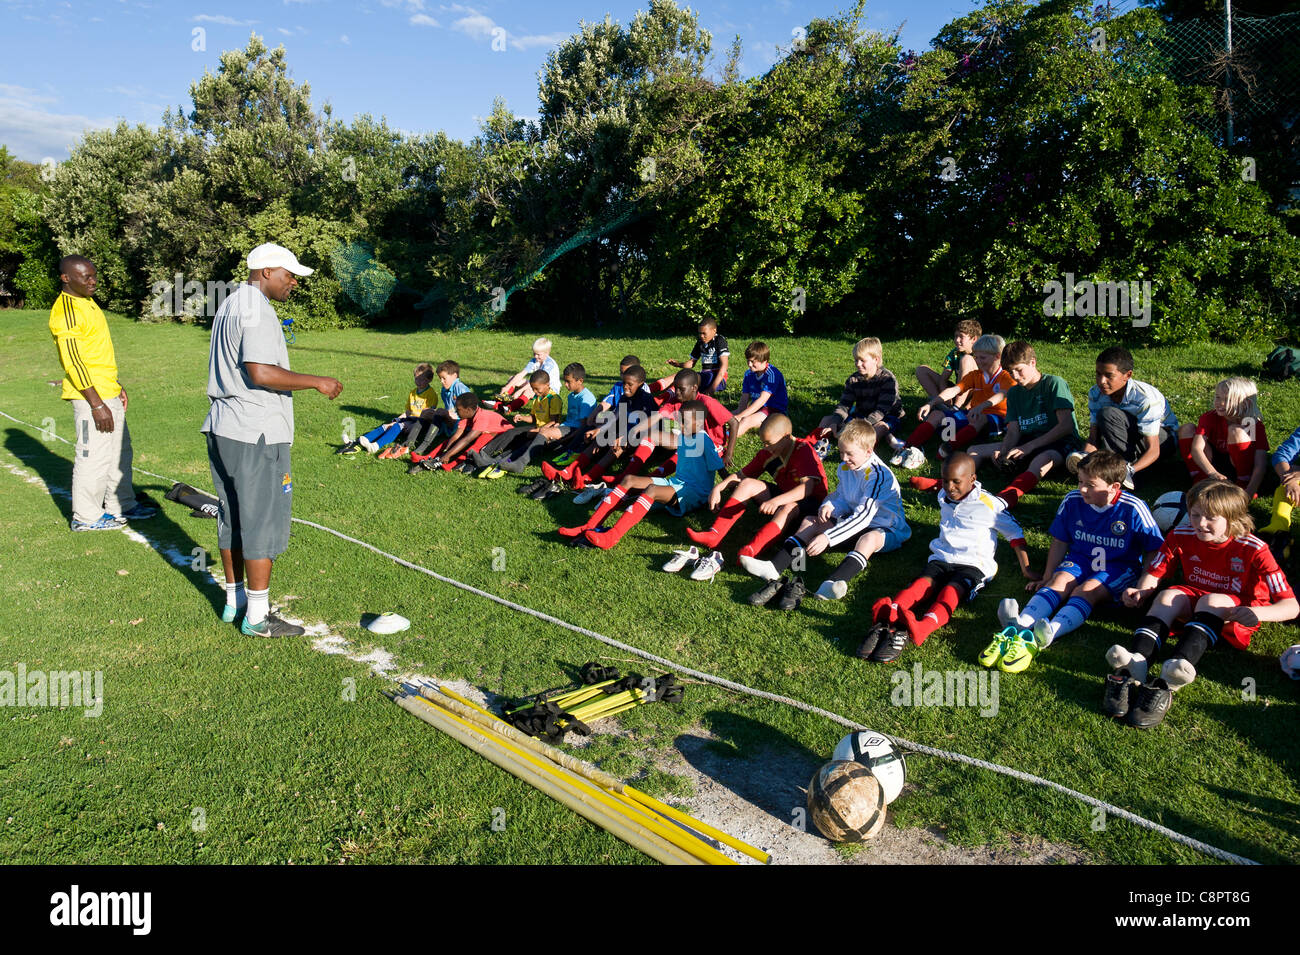 Football coaches addressing junior players during training Cape Town South Africa - Stock Image